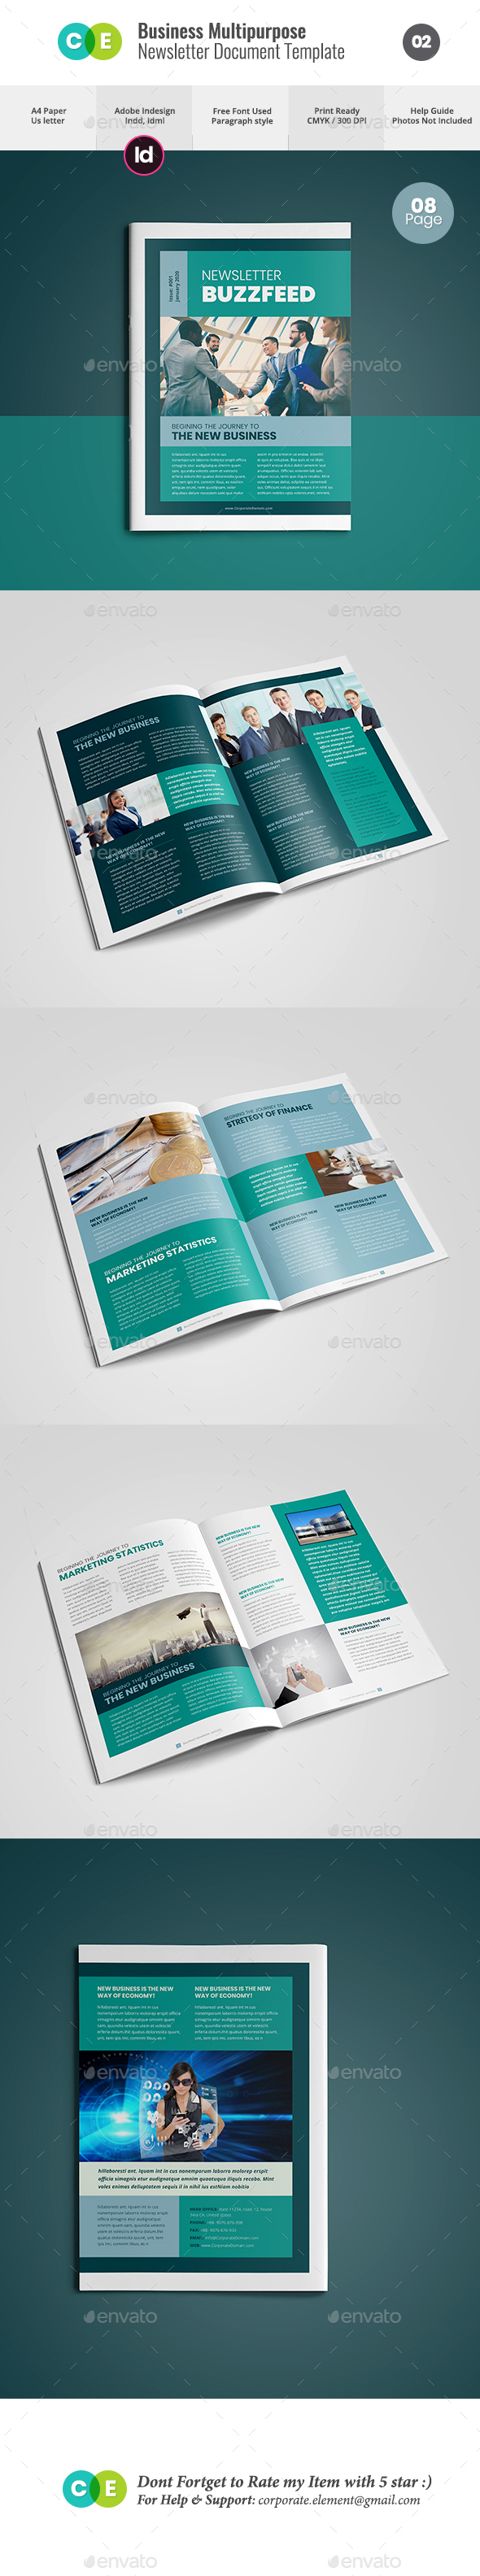 Newsletter For Multipurpose Business V02 - Newsletters Print Templates